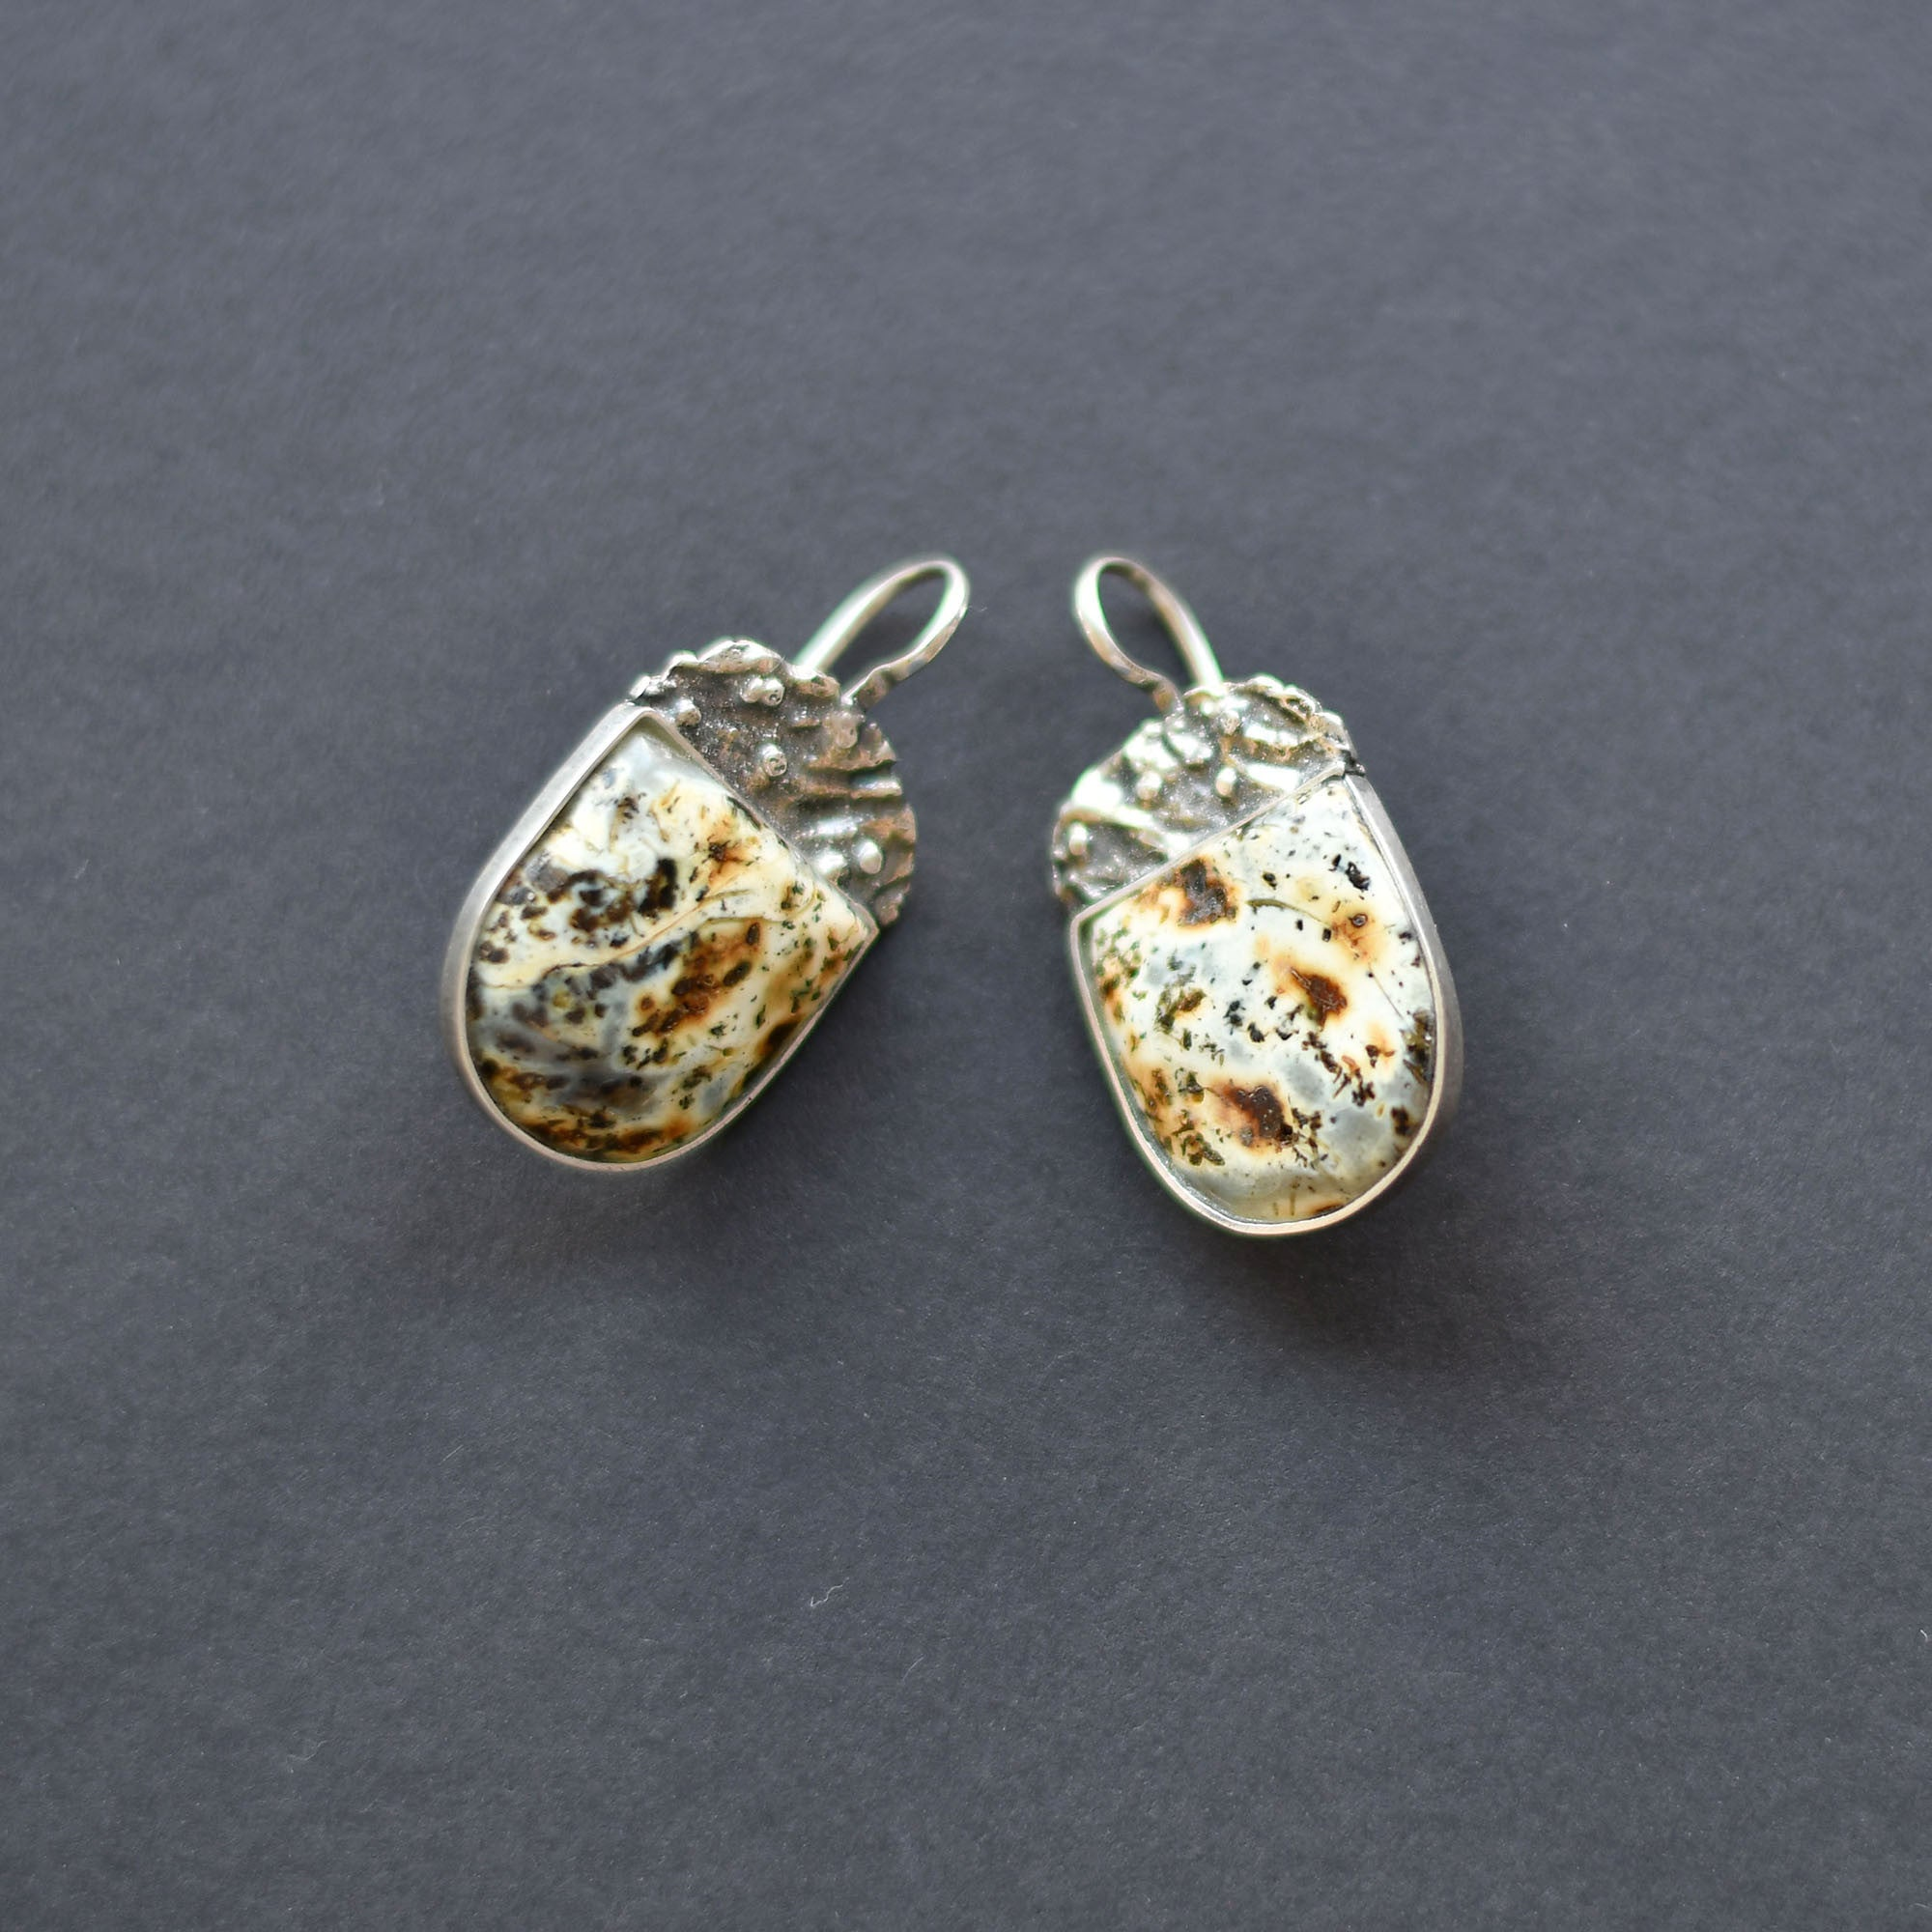 Amber earrings of blue pattern in silver setting